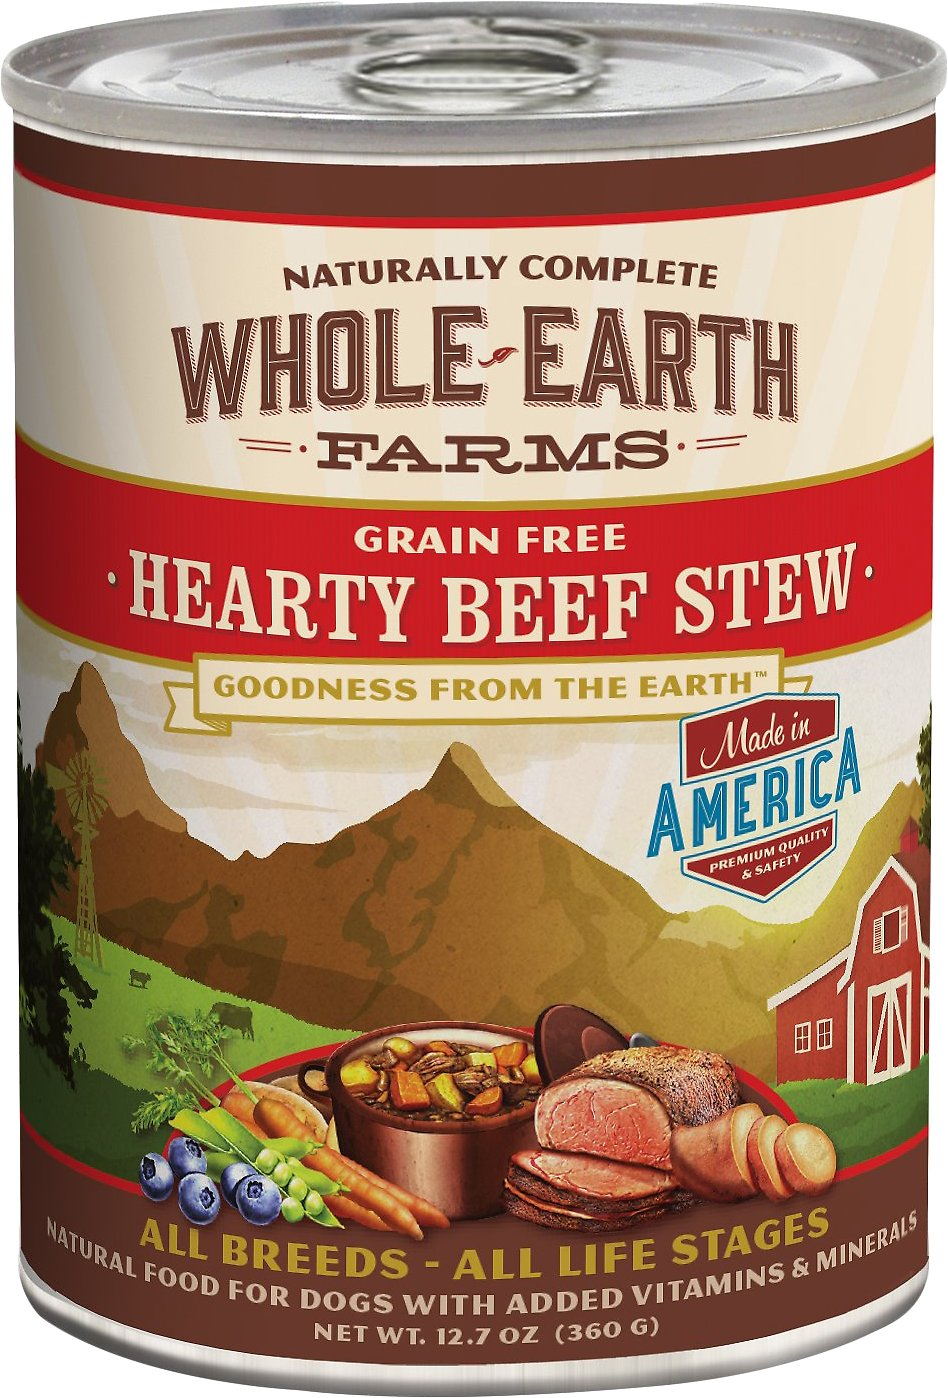 Whole Earth Farms Grain-Free Hearty Beef Stew Canned Dog Food, 12.7-oz